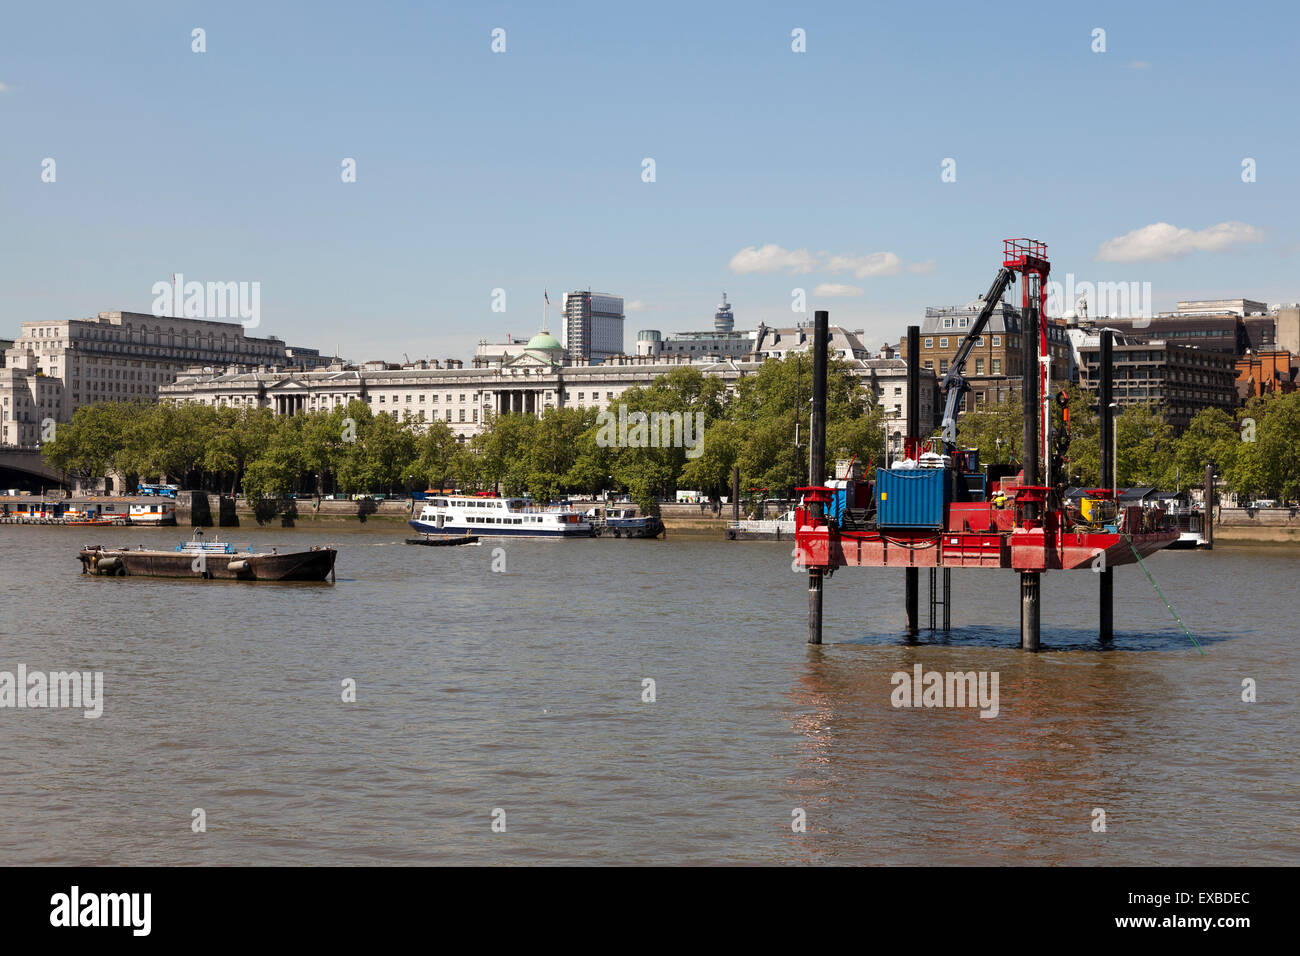 Exploratory boreholes drilled in the River Thames in prep. for the proposed Thomas Heatherwick designed Garden Bridge, - Stock Image